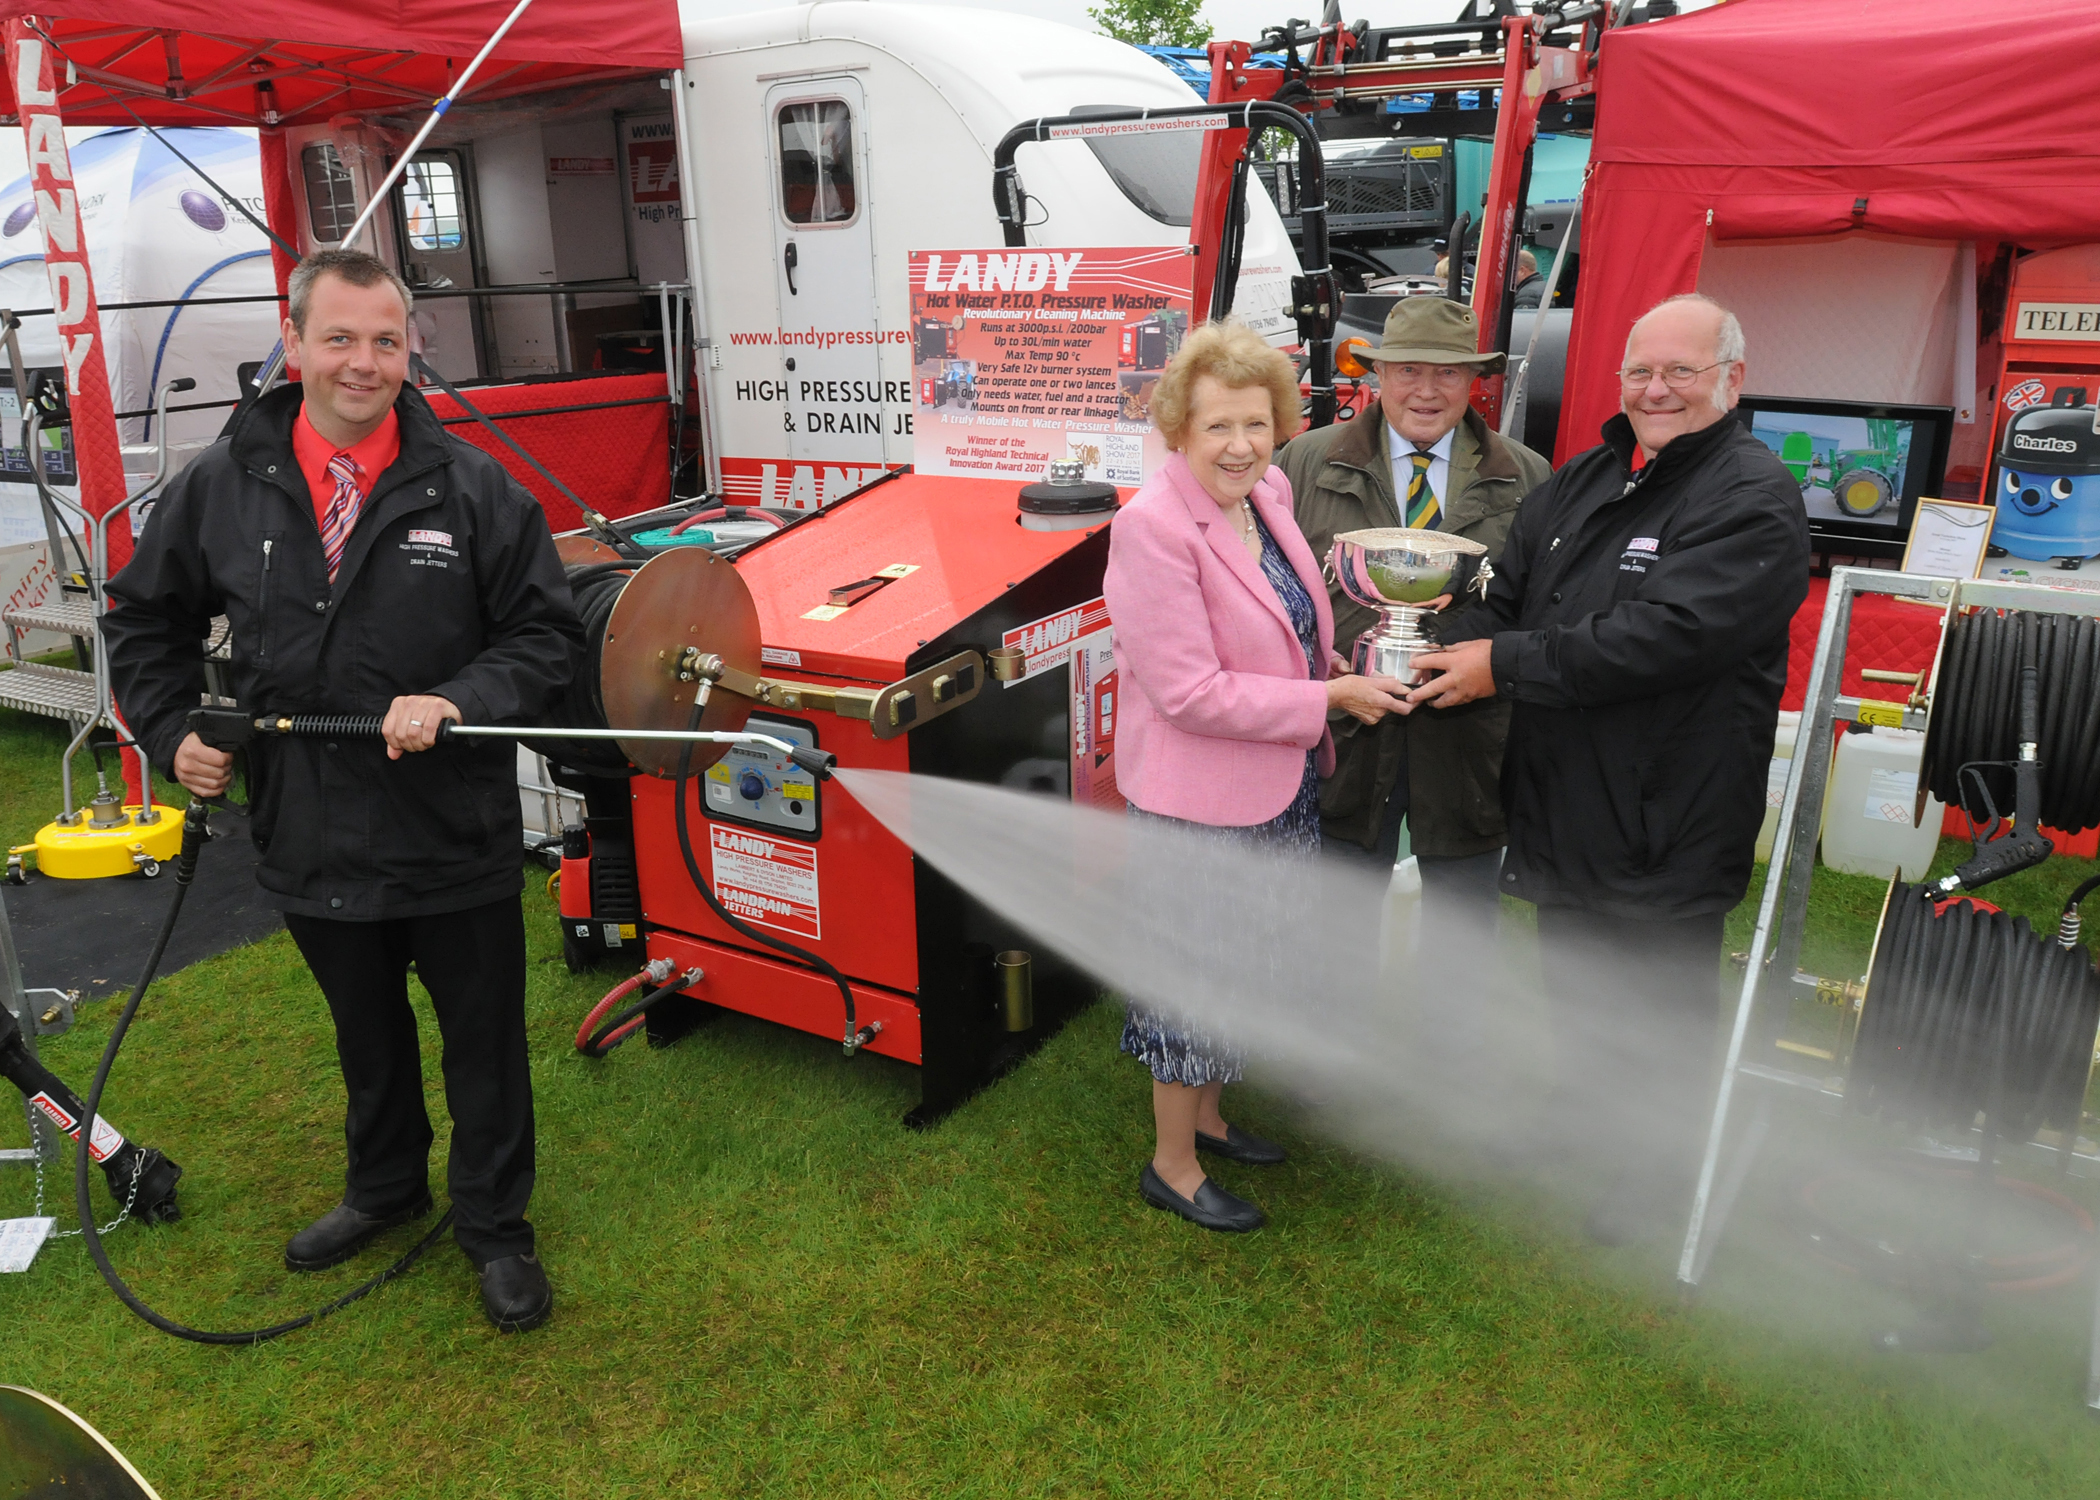 Picture shows Mr Matthew Lambert, Director of Landy Pressure Washers demonstrating their new washer system whilst (l to r) Mrs Jenny Penty and Mr John Penty present the White Rose What's Next Innovation Award to the Chairman of Landy Pressure Washers